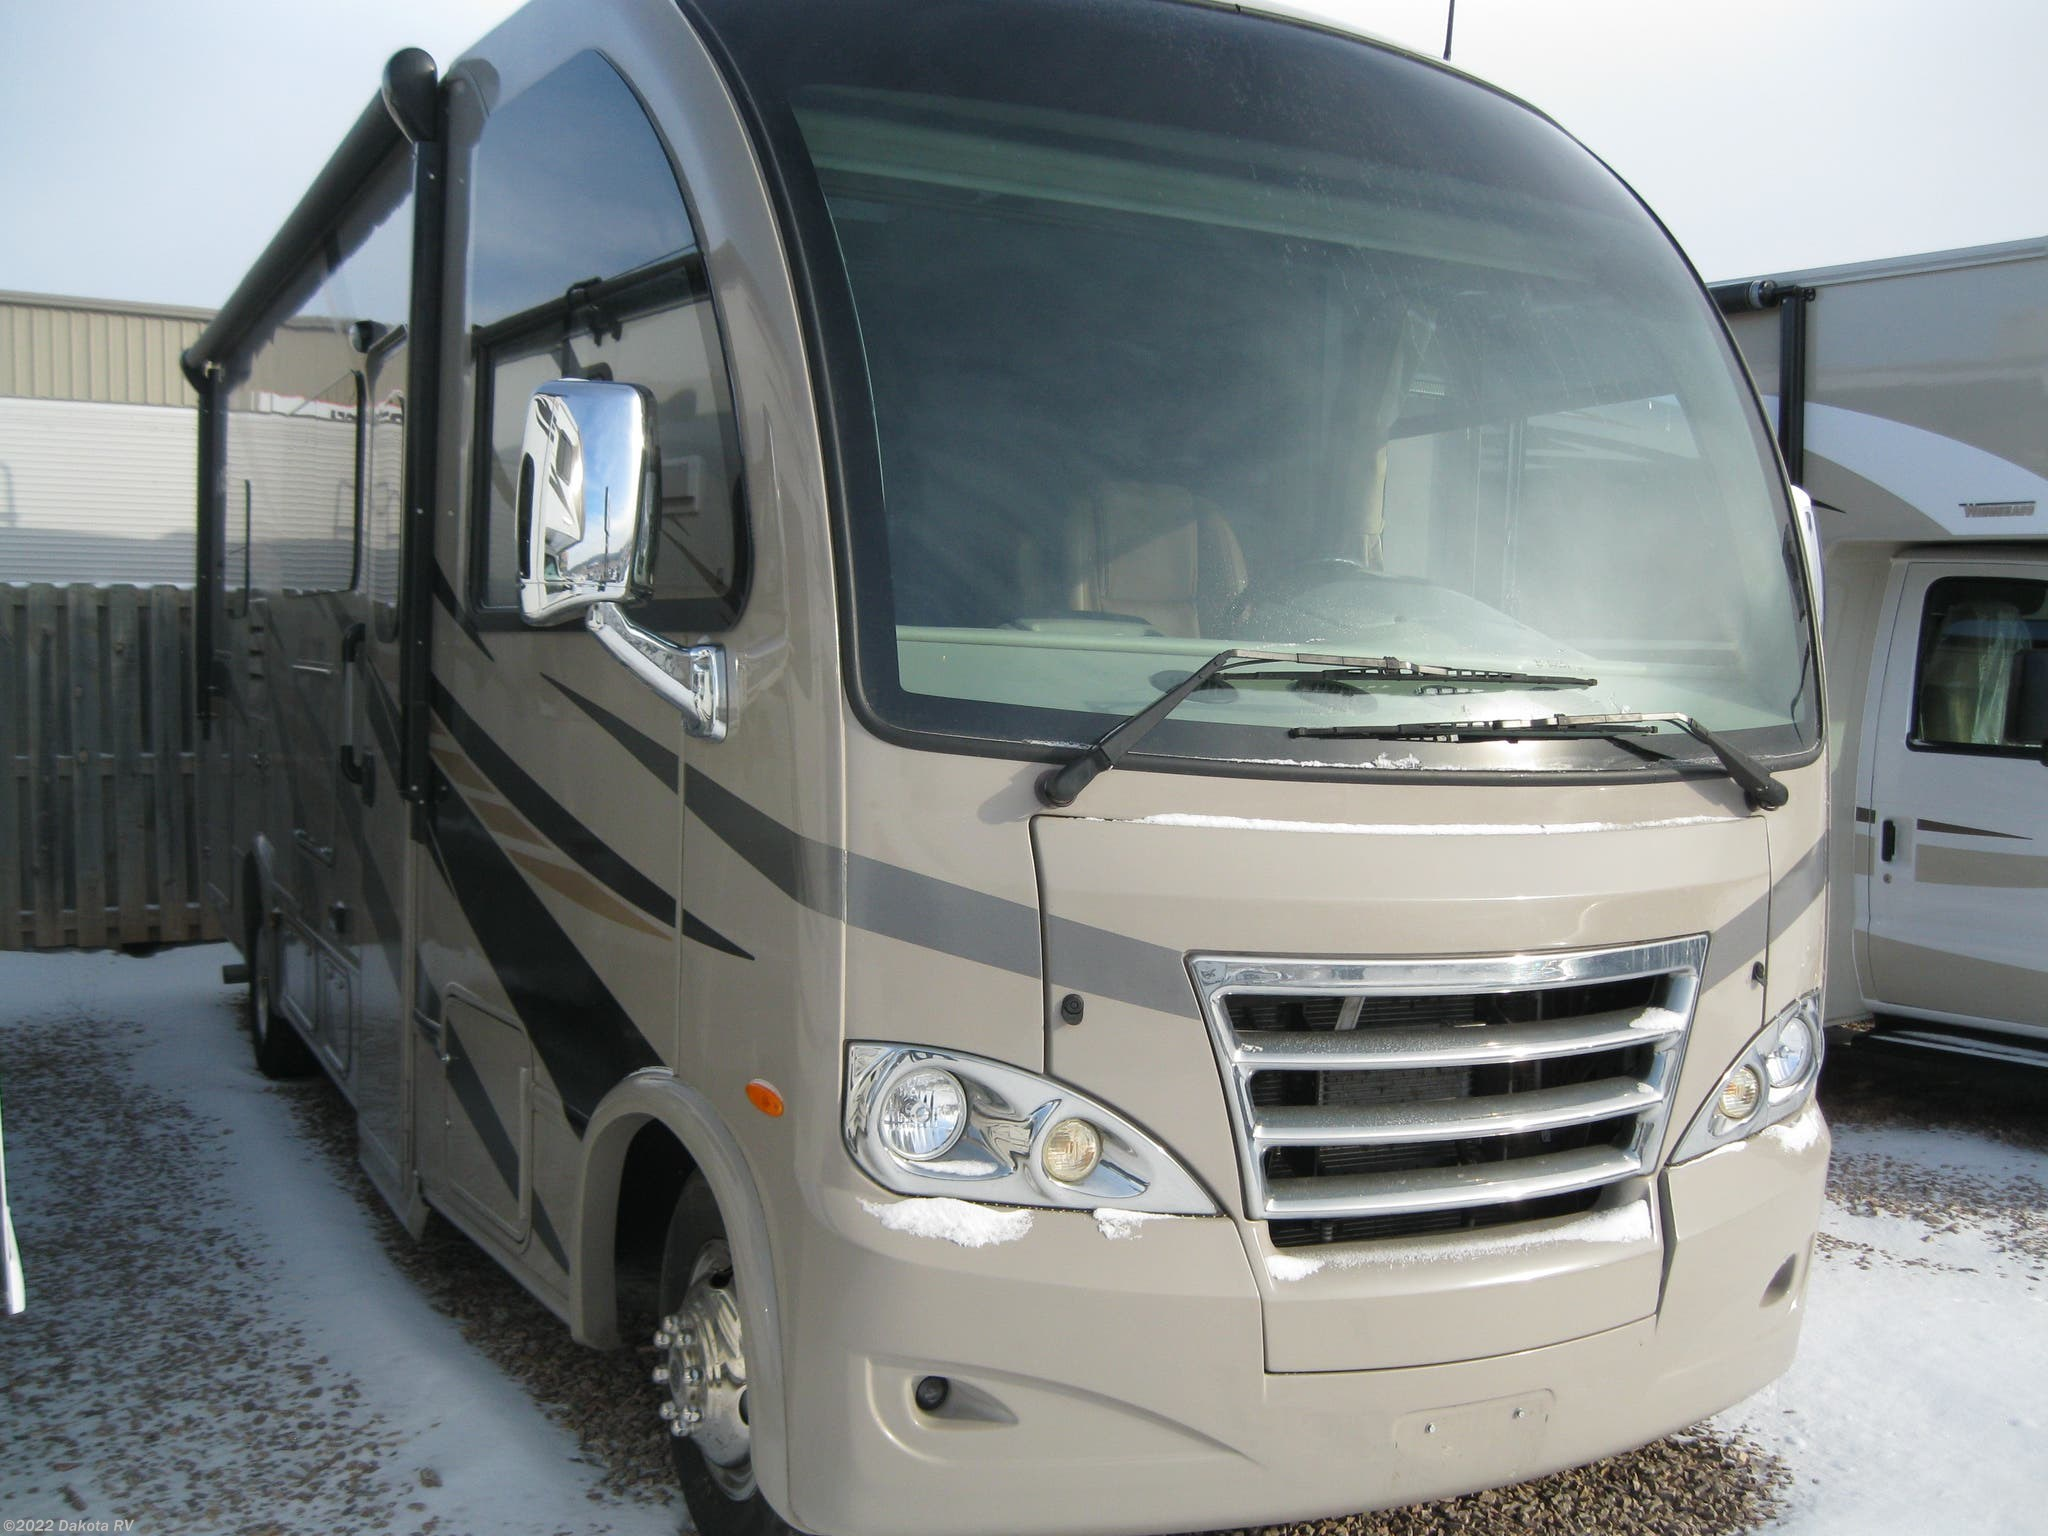 C1134 - 2010 Winnebago Via 25T Class A for sale in Rapid City SD